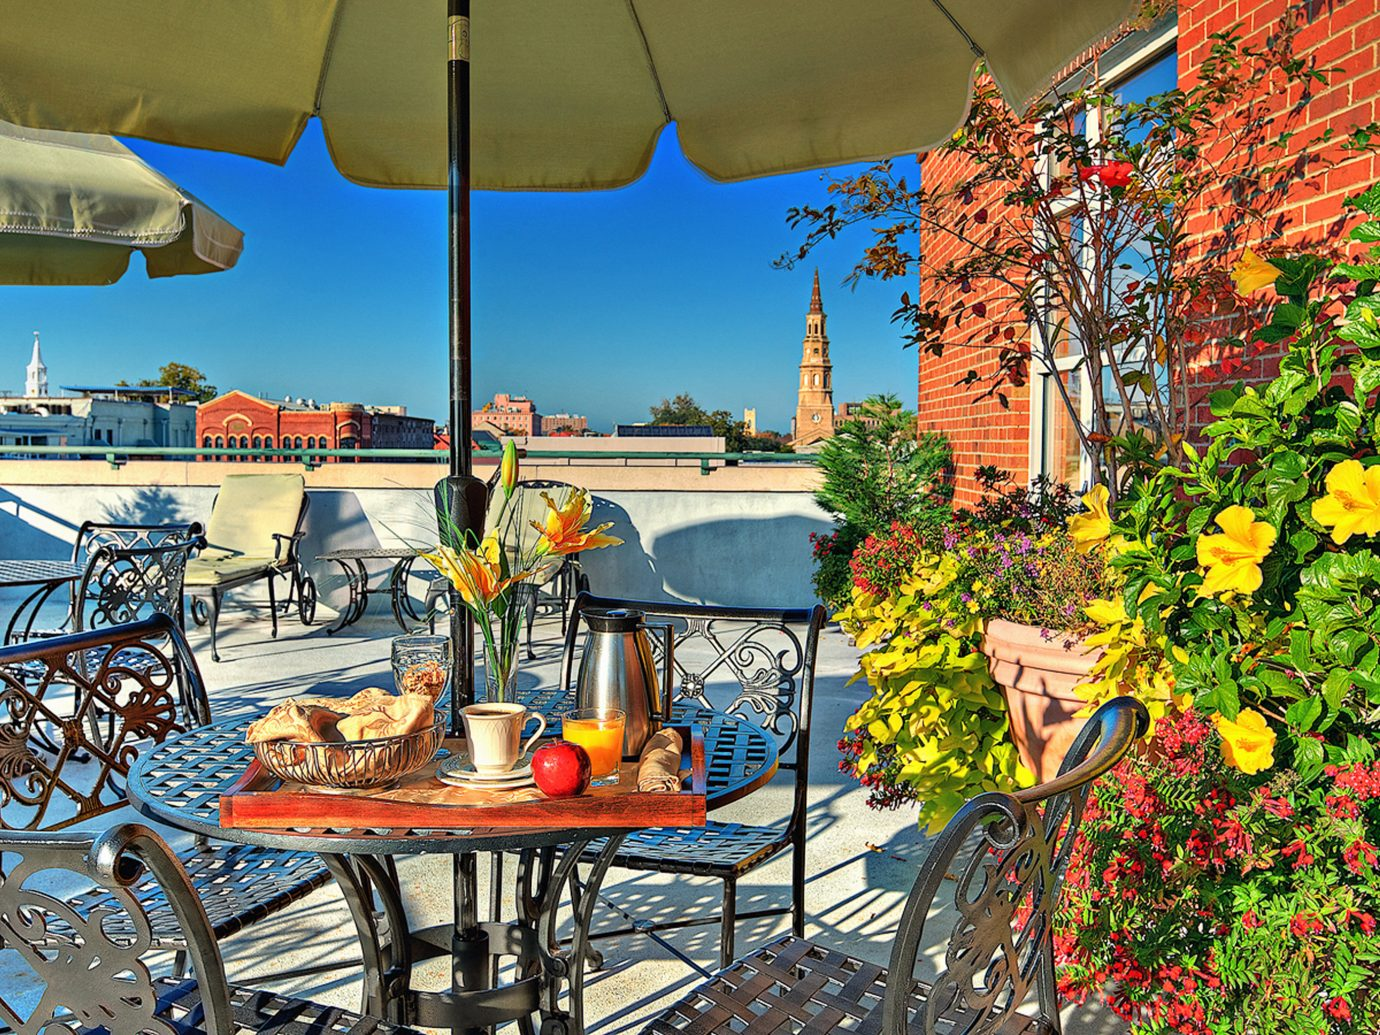 City Dining Drink Eat Hotels Luxury Travel Scenic views color outdoor leisure amusement park vacation tourism Resort restaurant